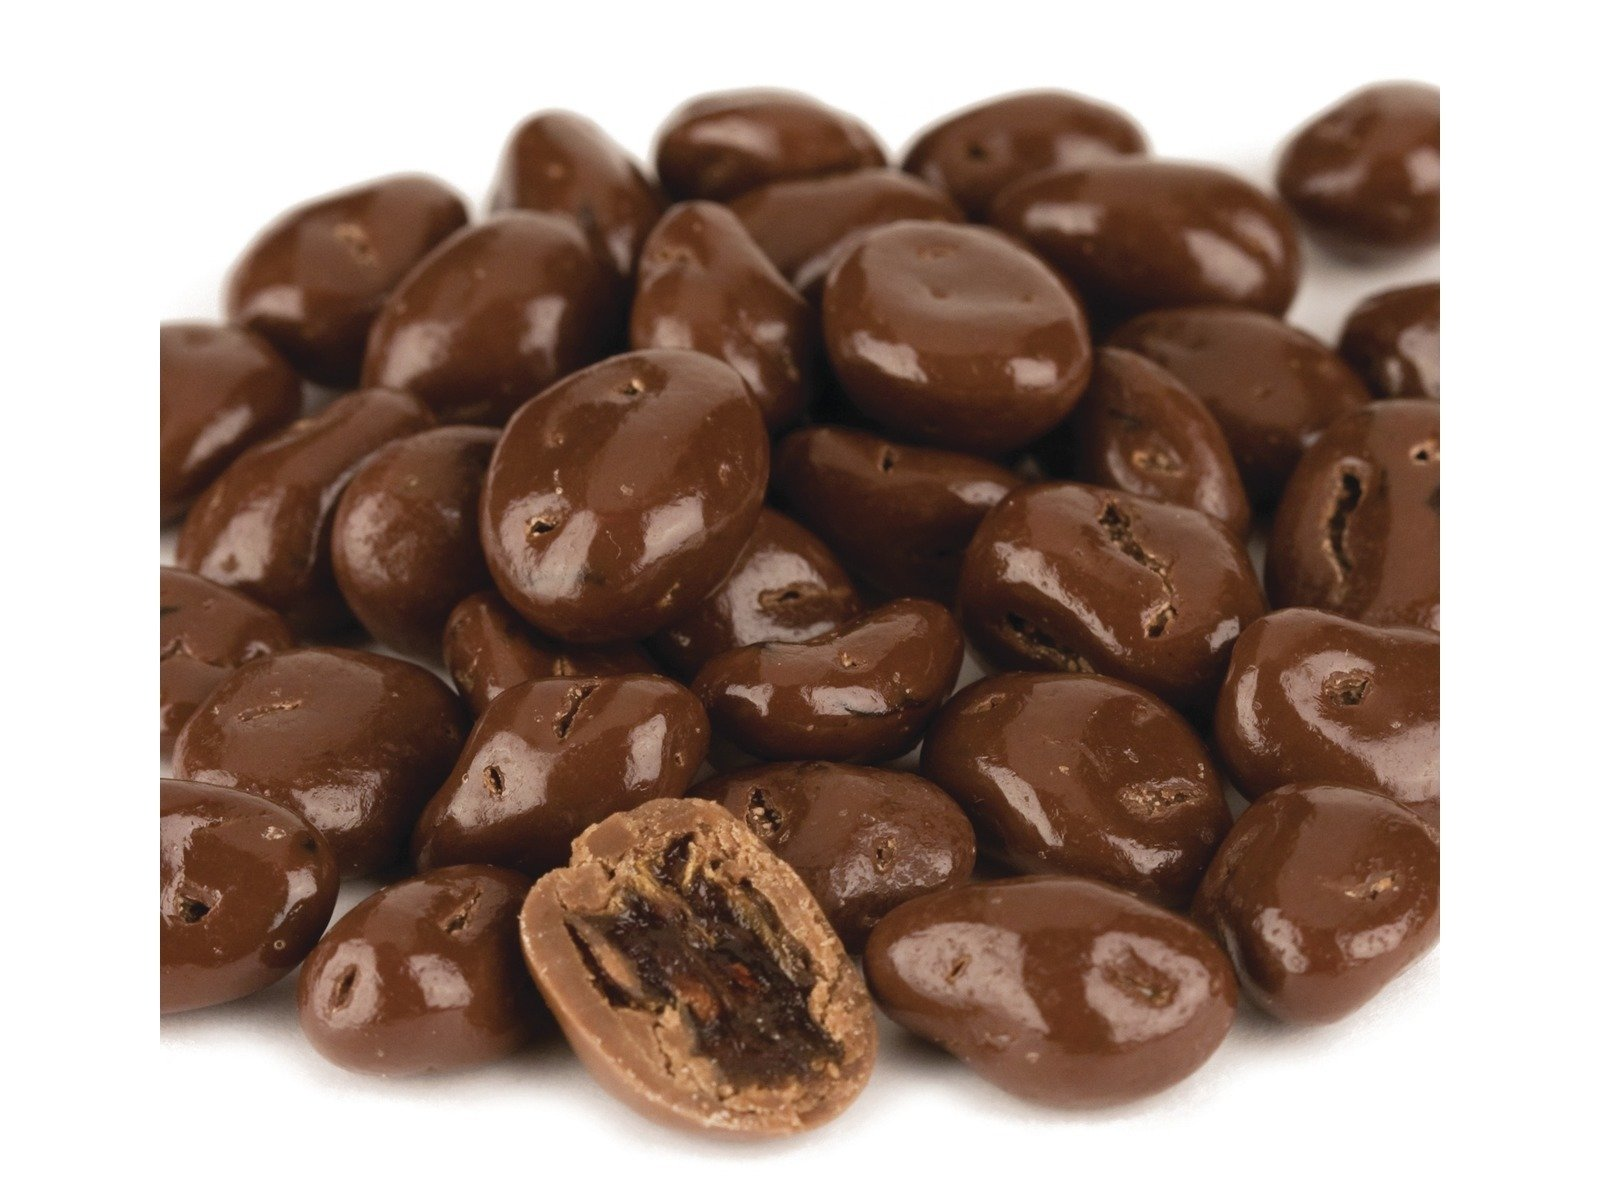 No Sugar Added Milk Chocolate covered Raisins 5 pounds